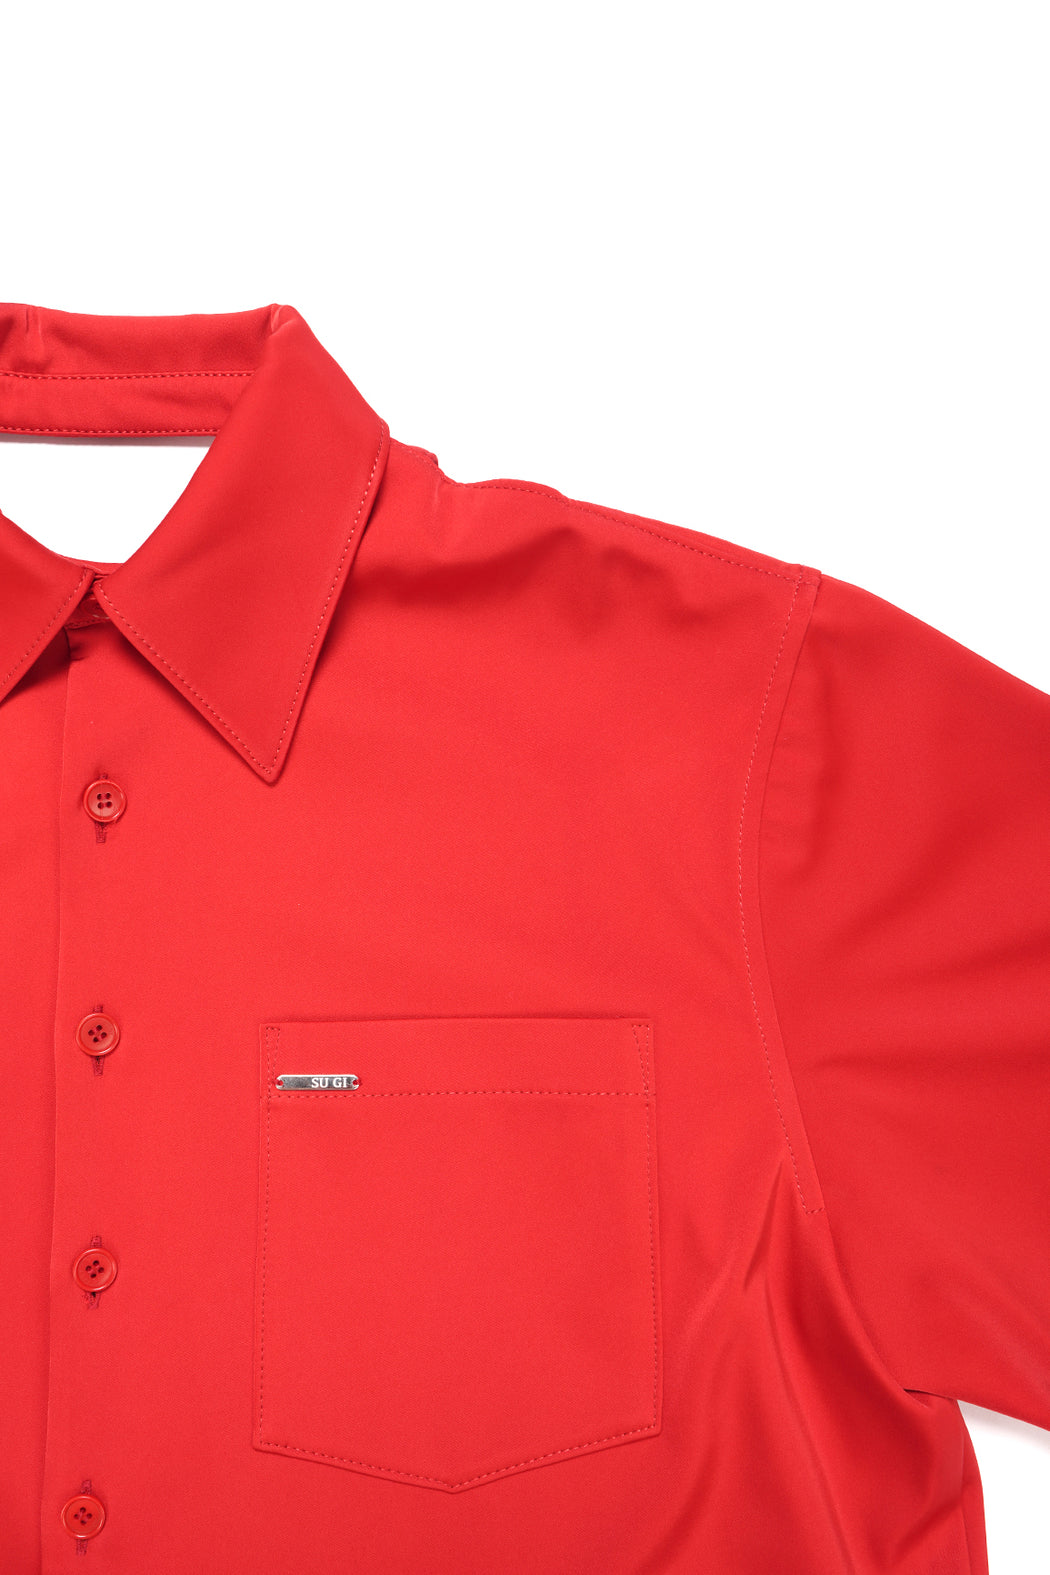 Back Cutting Oversized Shirt - Red